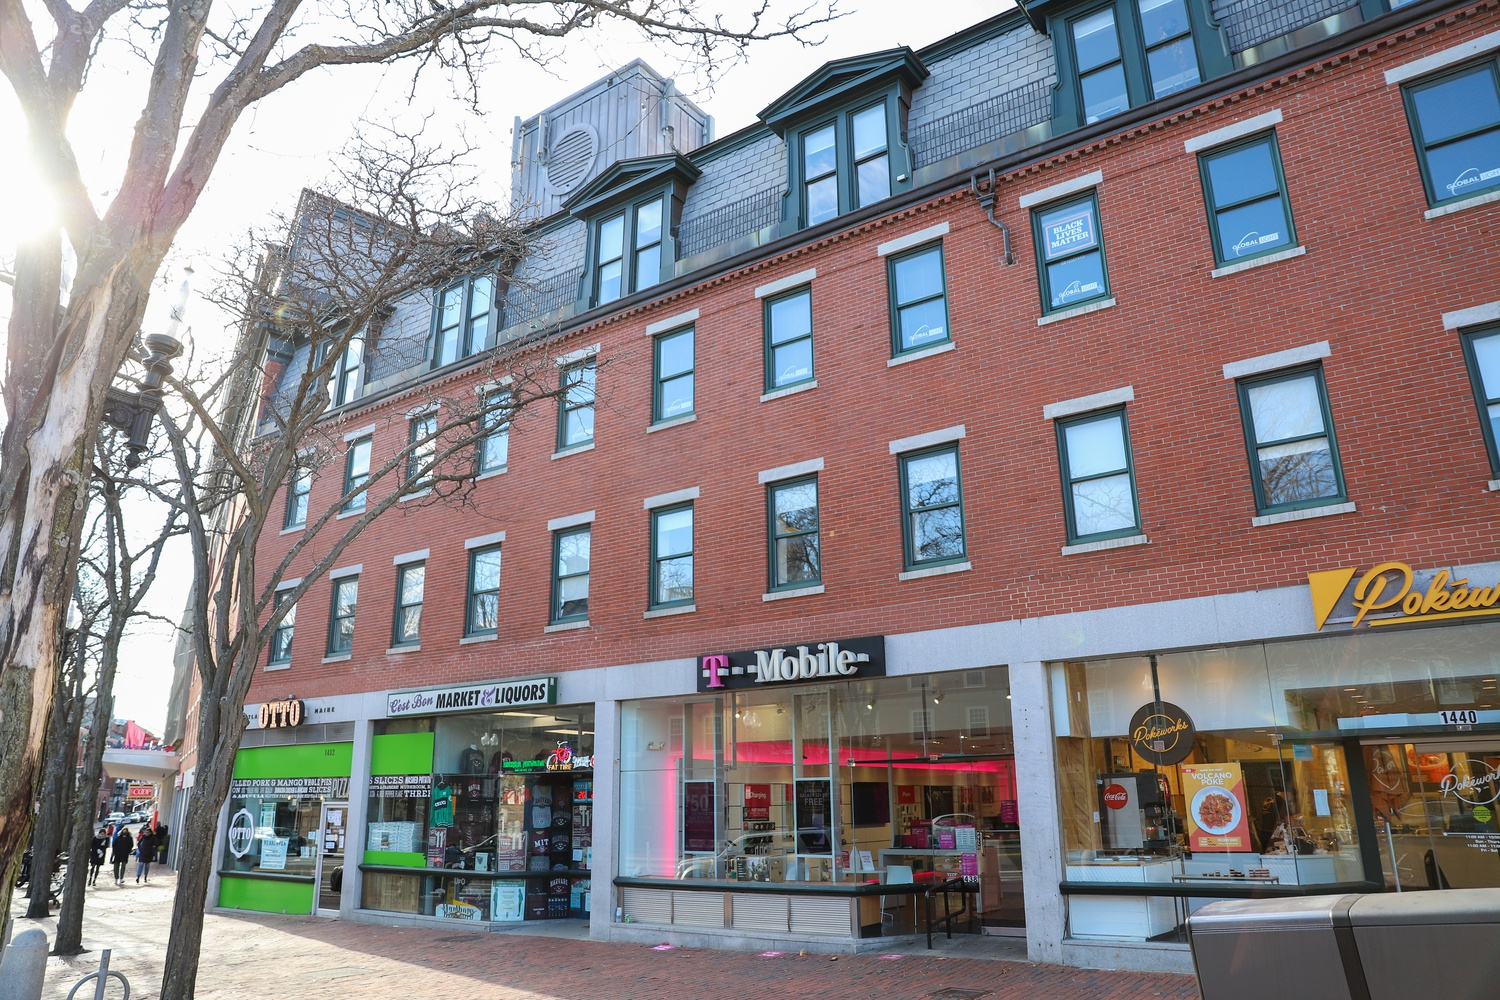 Real estate firm Gazit Horizons purchased a building in Harvard Square for $45 million last month.